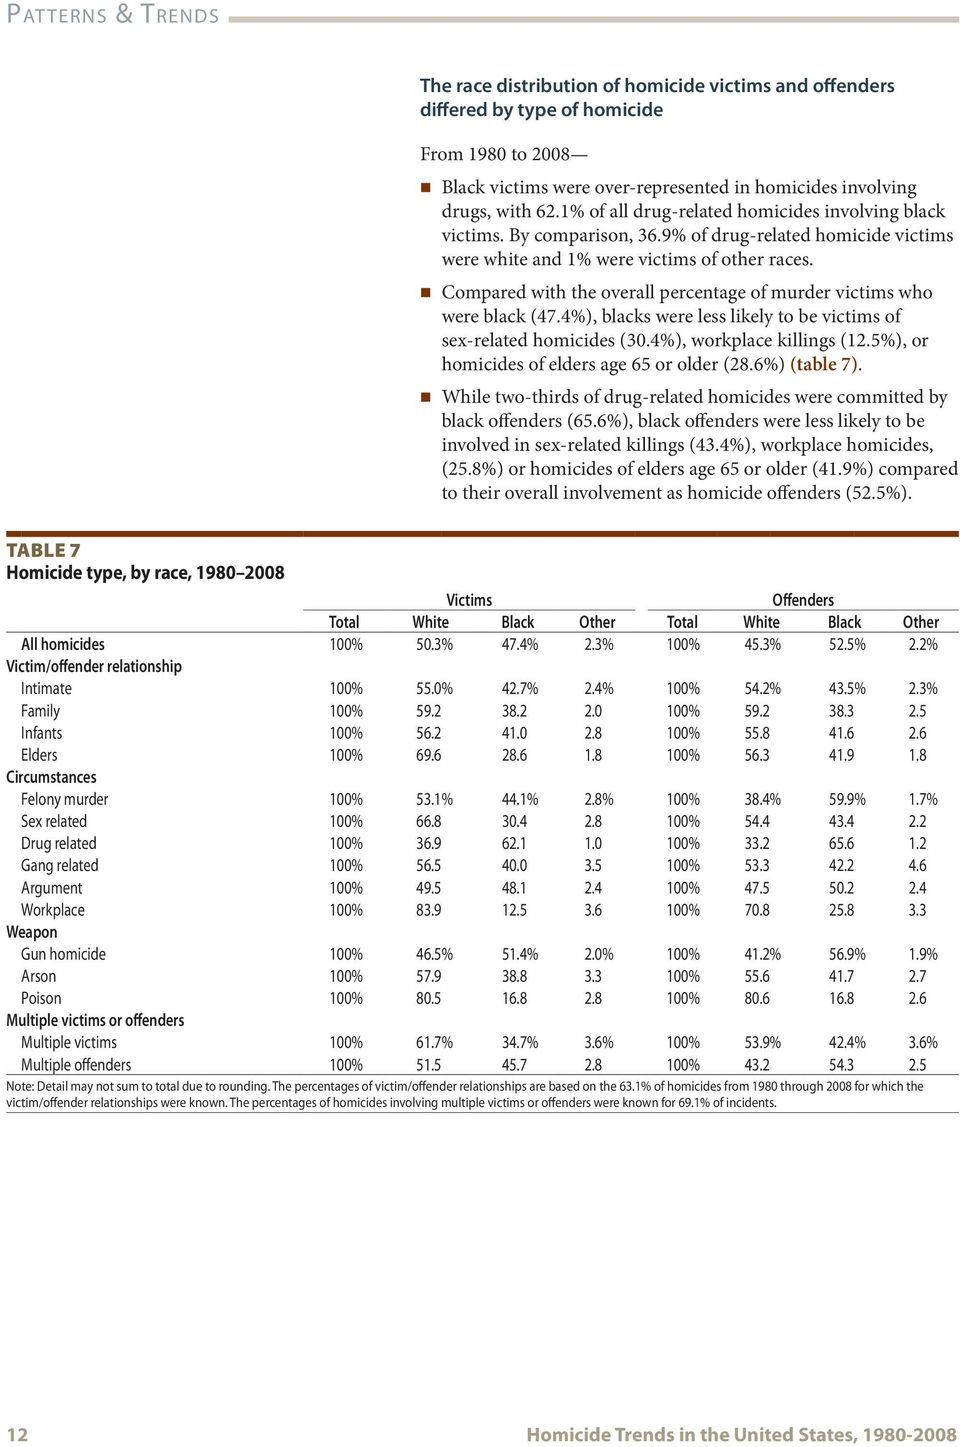 Compared with the overall percentage of murder victims who were black (47.4%), blacks were less likely to be victims of sex-related homicides (3.4%), workplace killings (12.